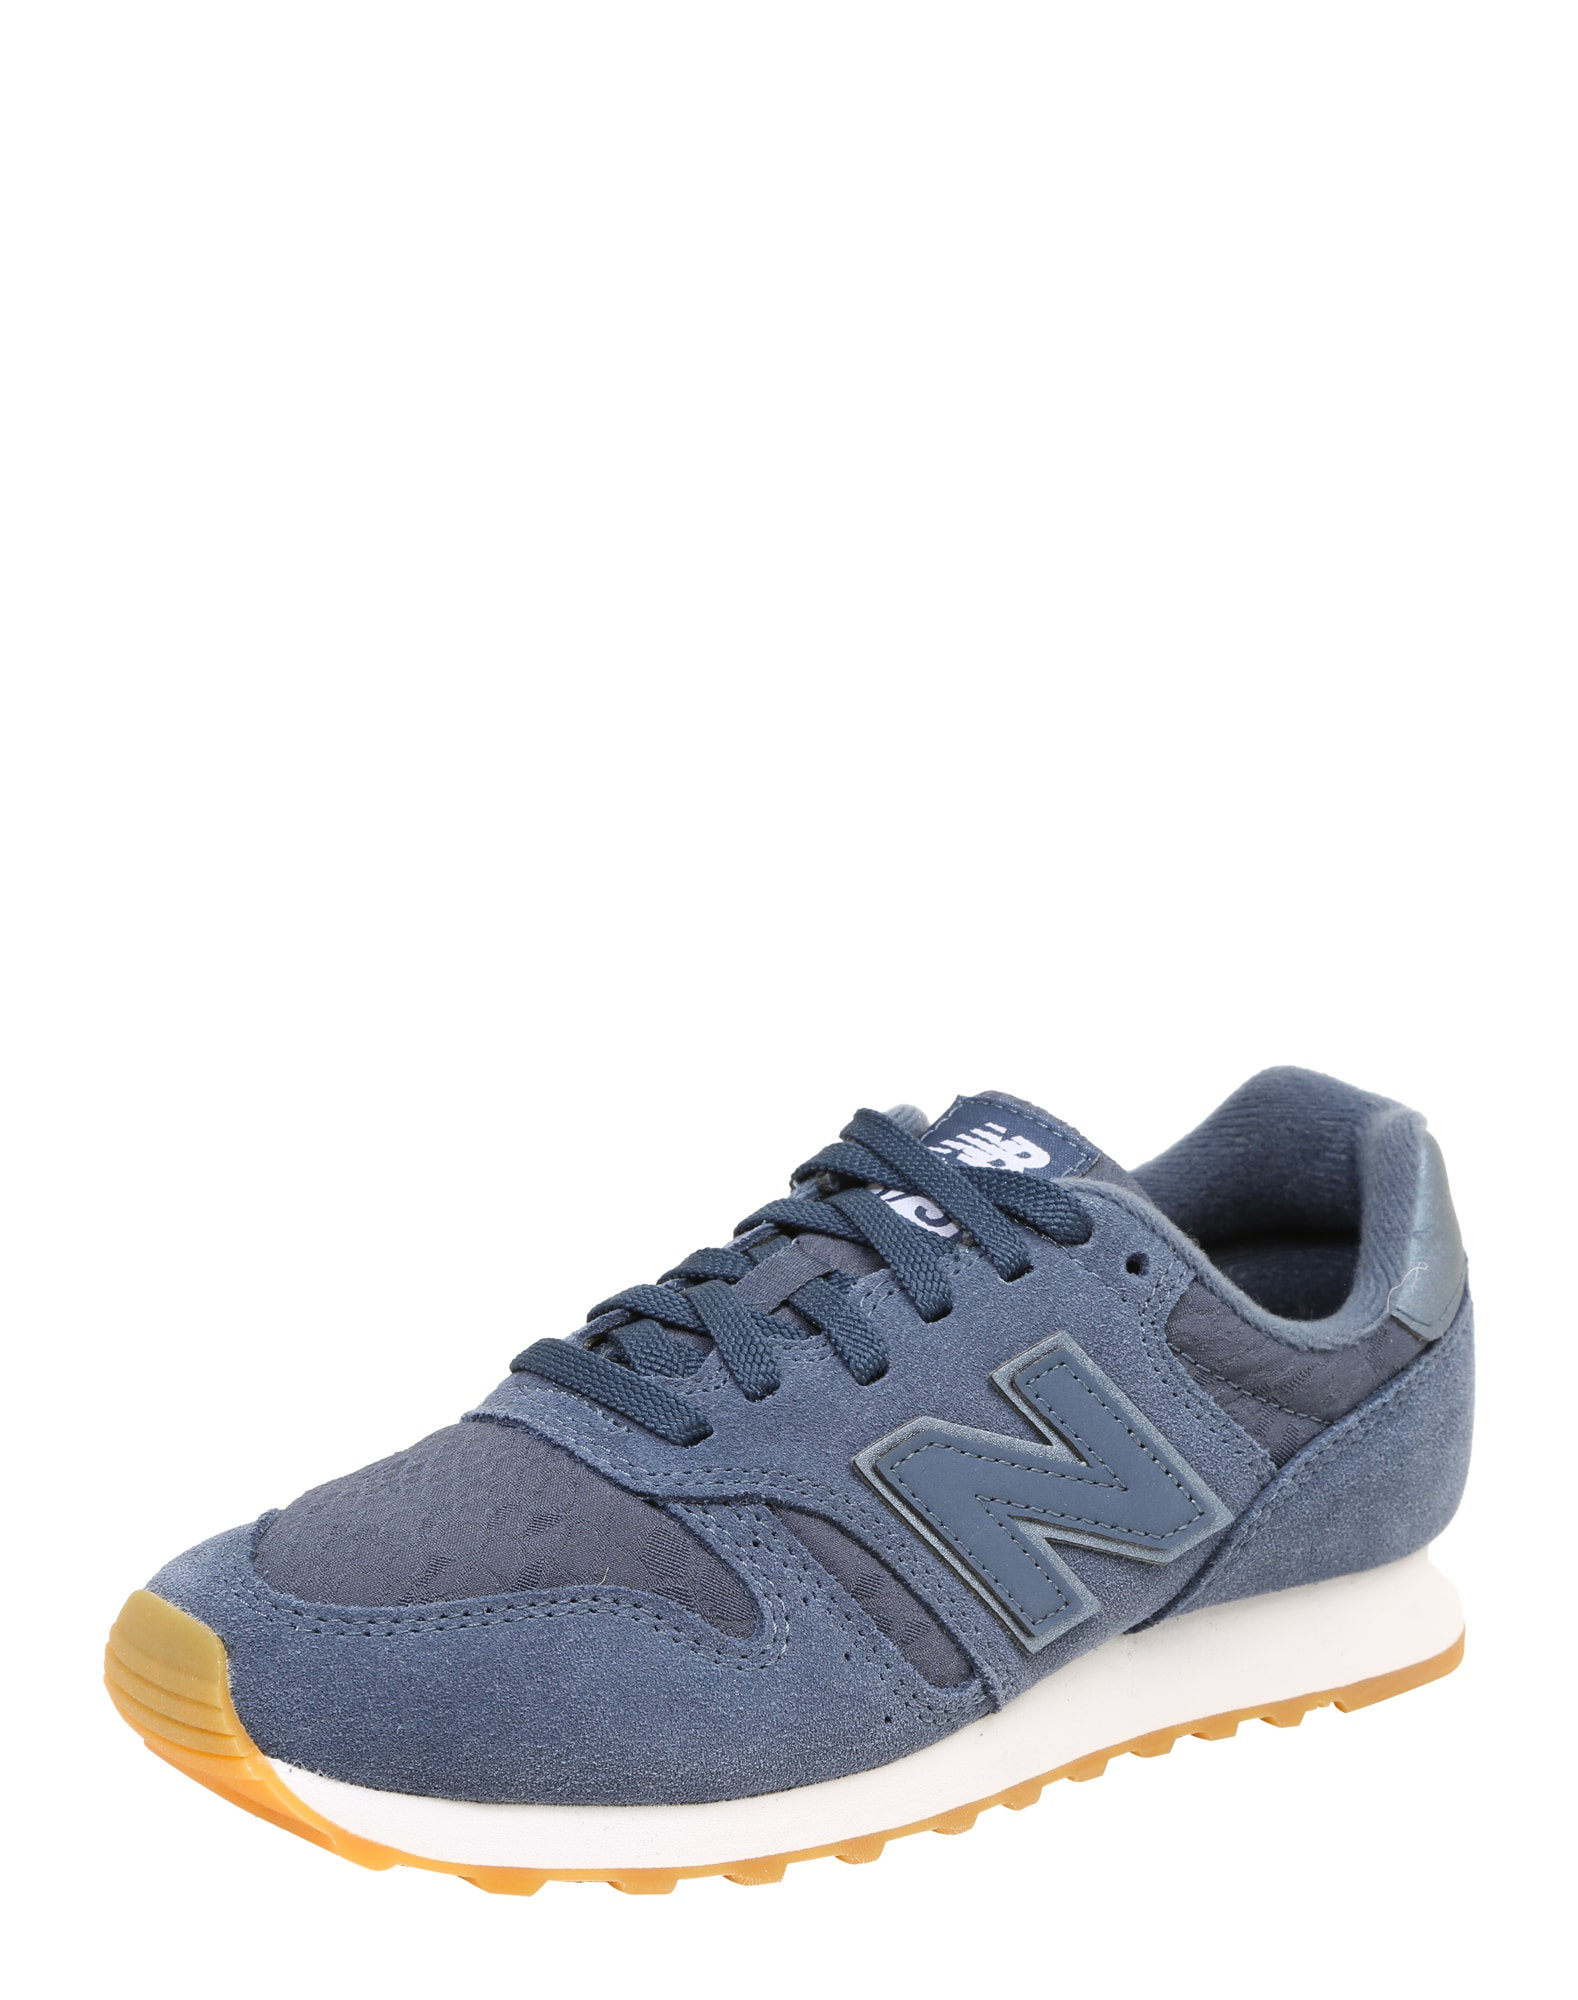 New Balance, Dames Sneakers laag 'WL373', navy / duifblauw